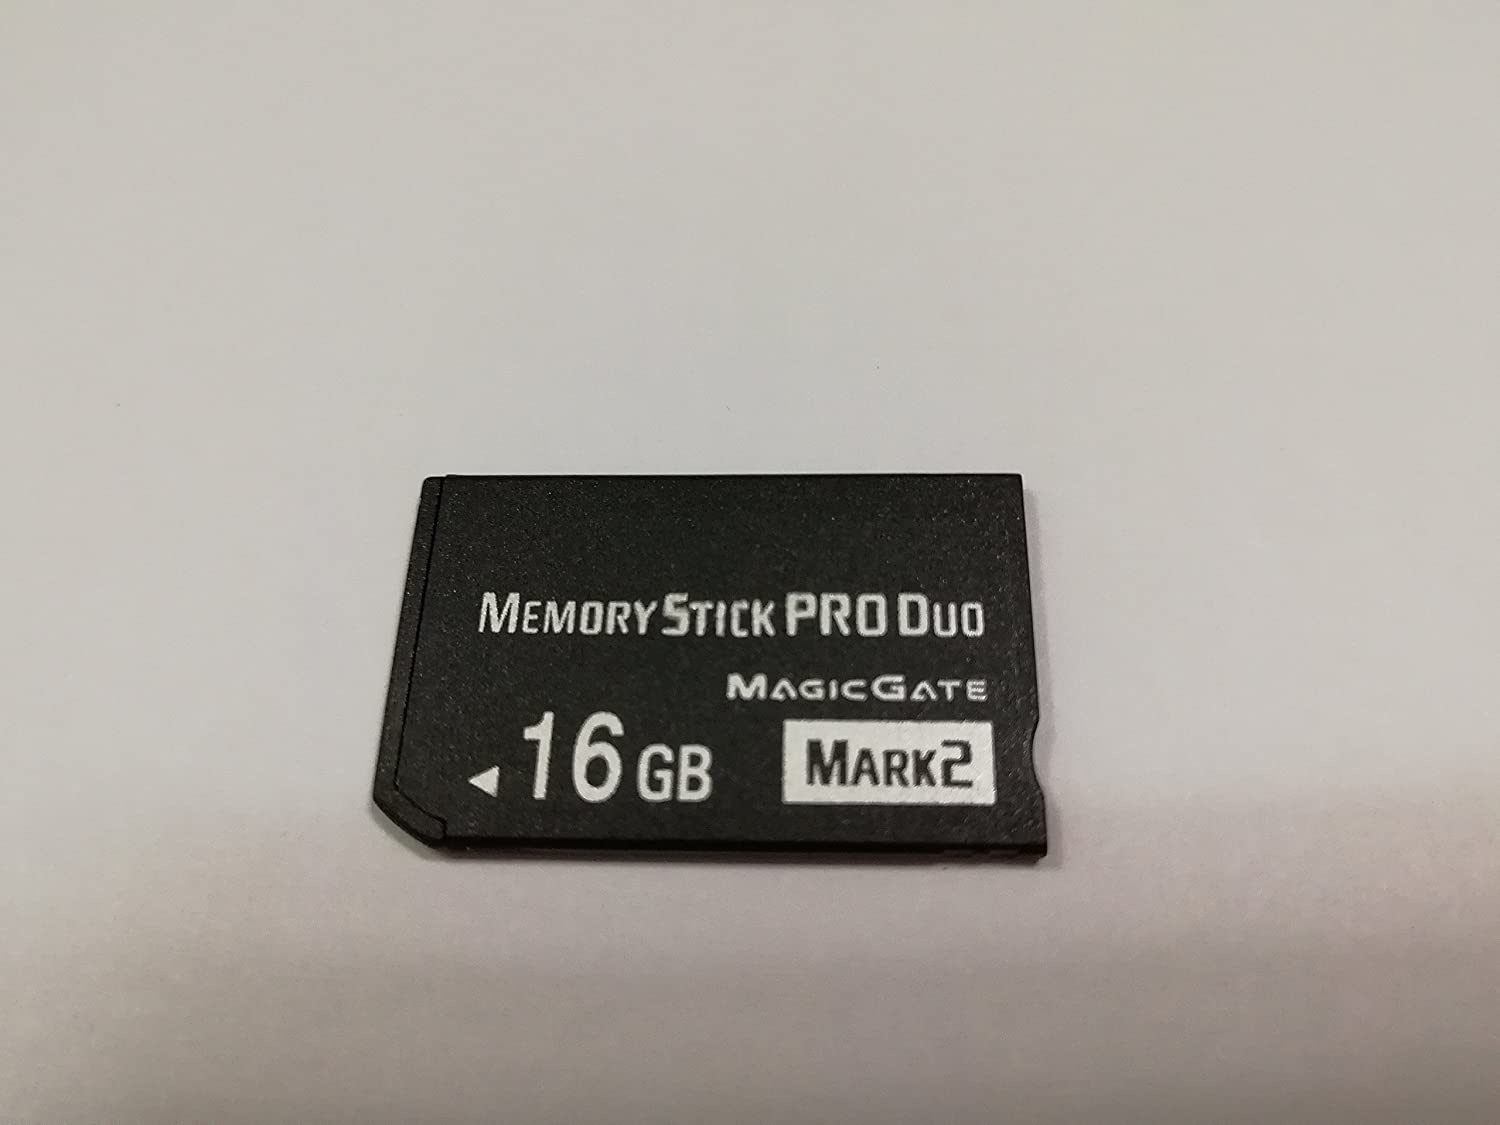 Polly1986 Original High speed memory stick Pro- HG 16GB Black Mark 2 PSP Accessories for Sony camera